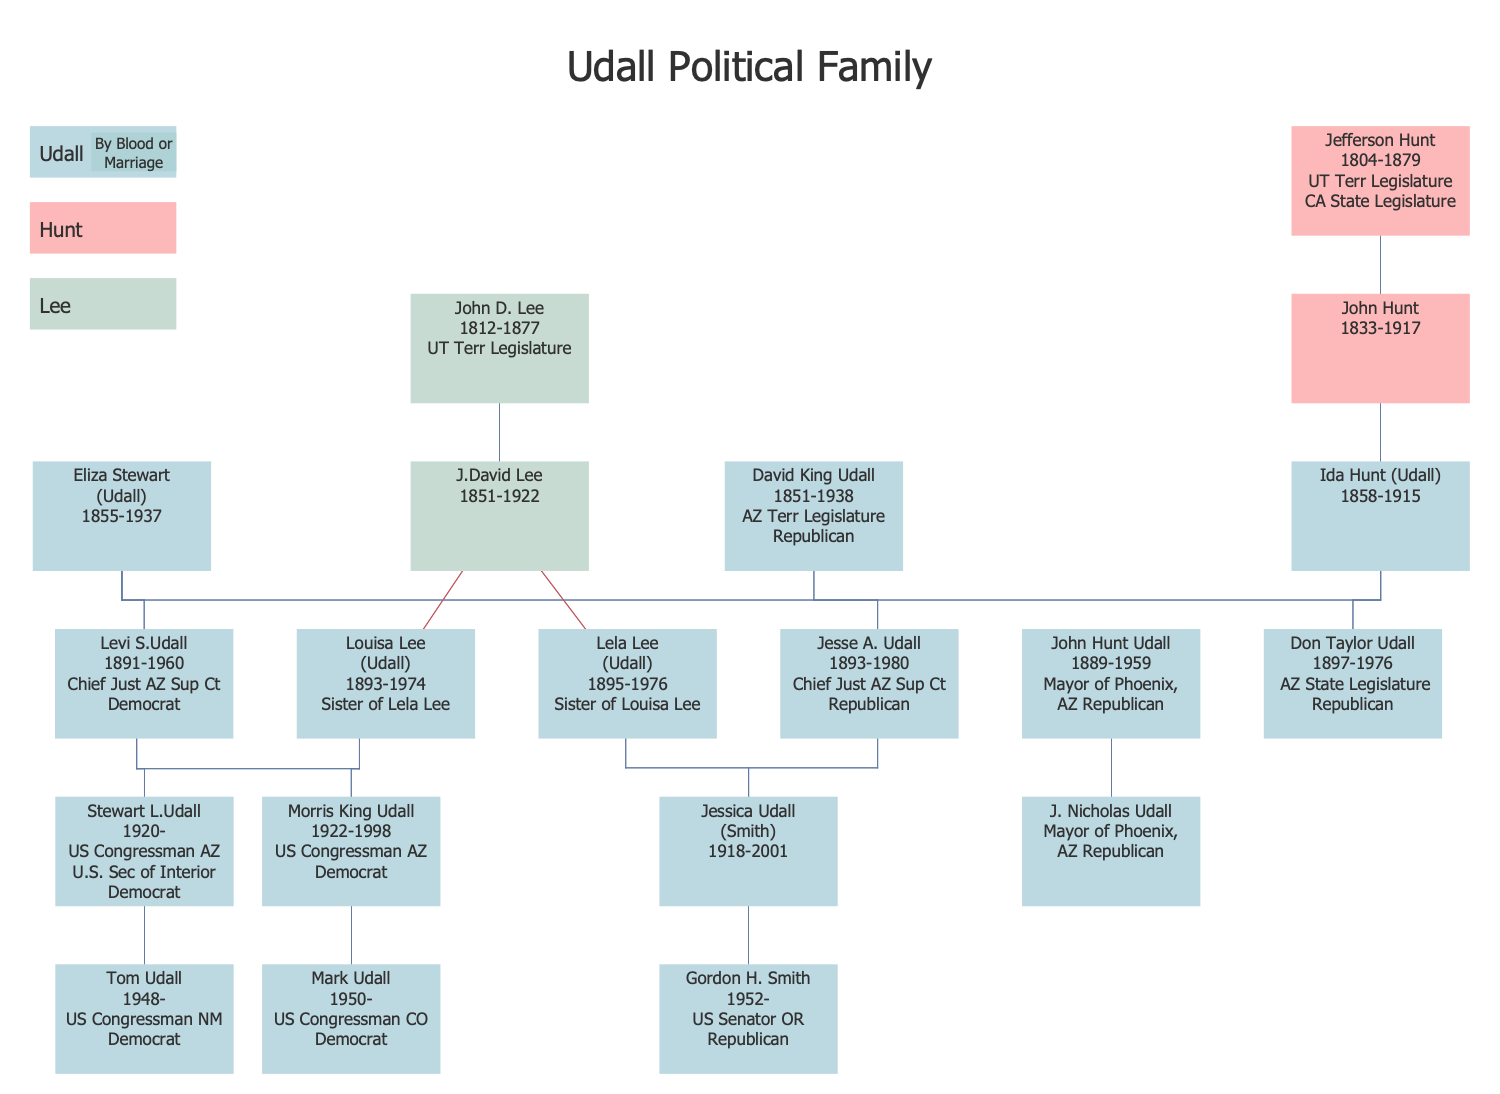 Udall Political Family